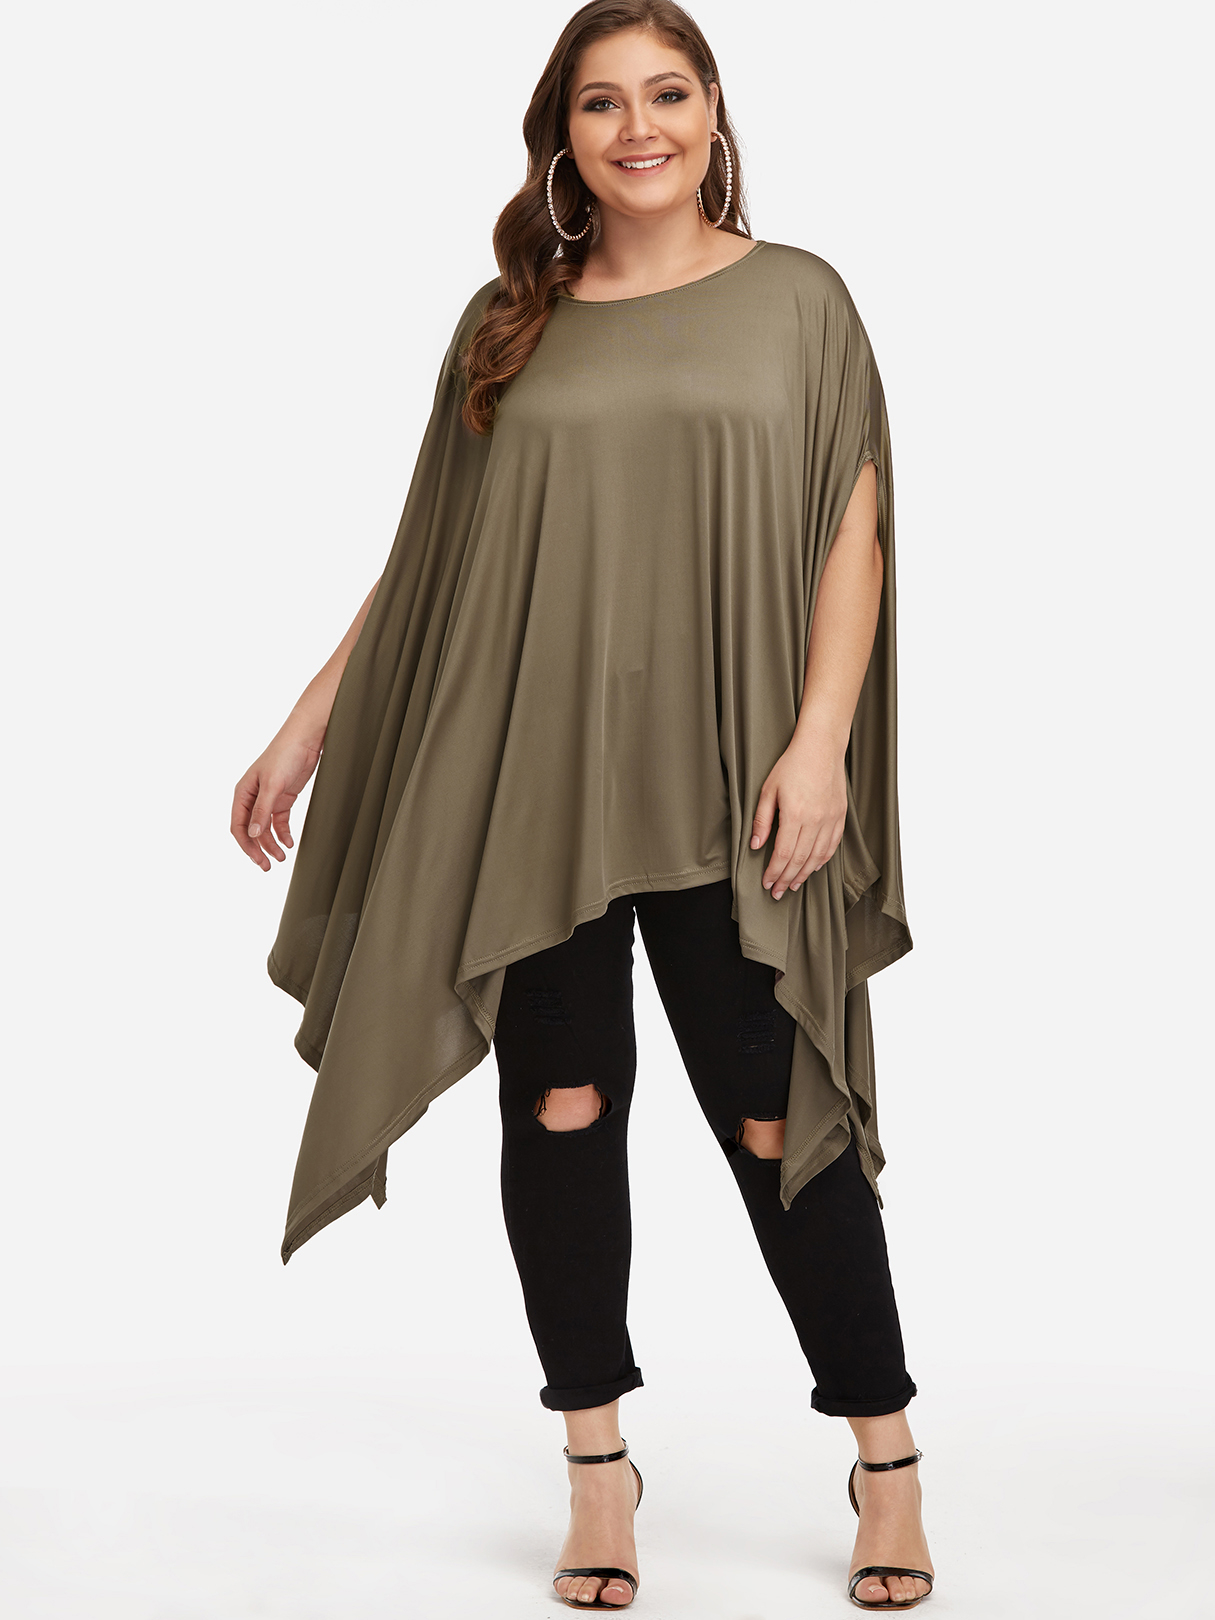 Plus Size Army Green Bat Sleeves Blouse